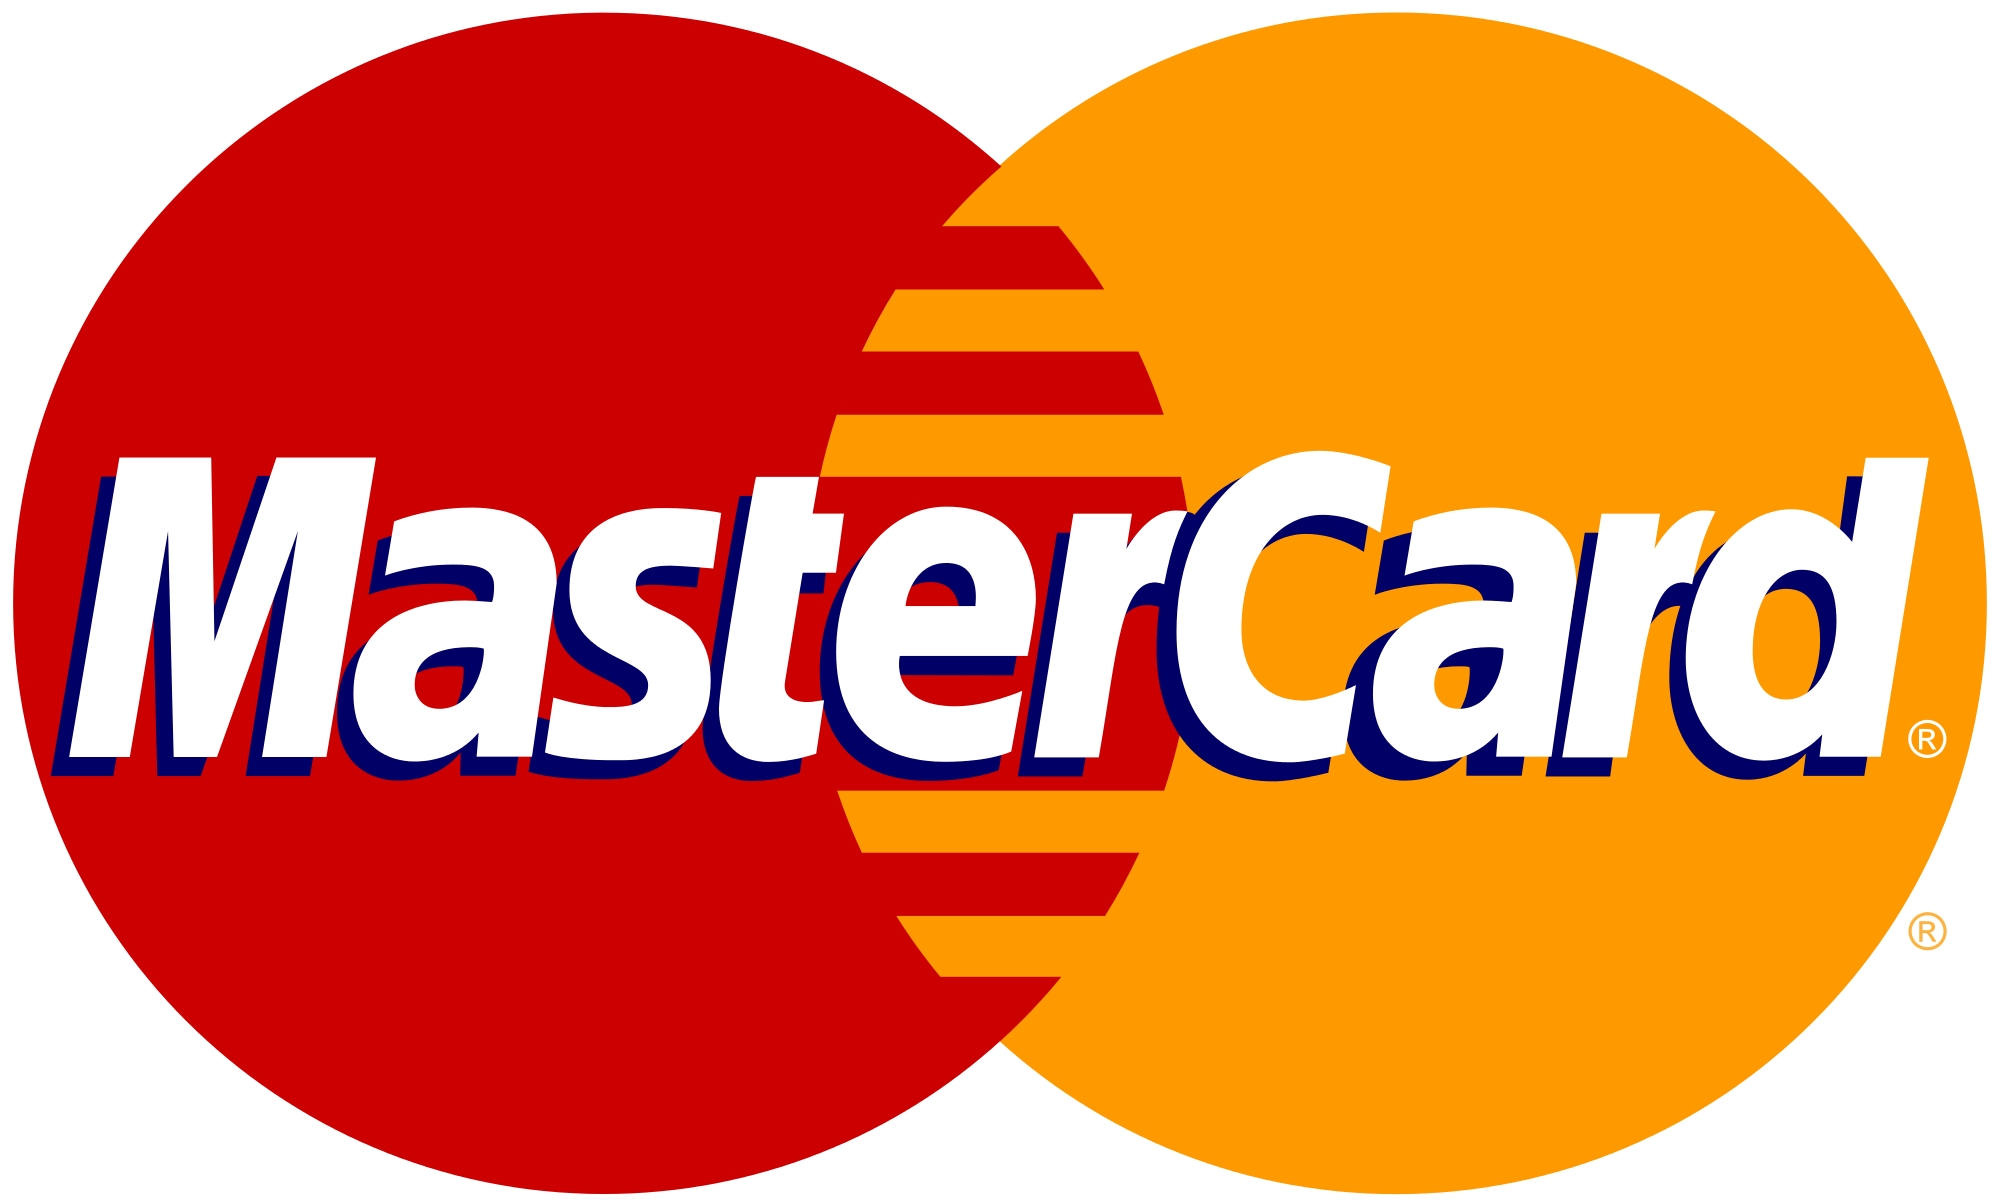 We accept Master Card online payments